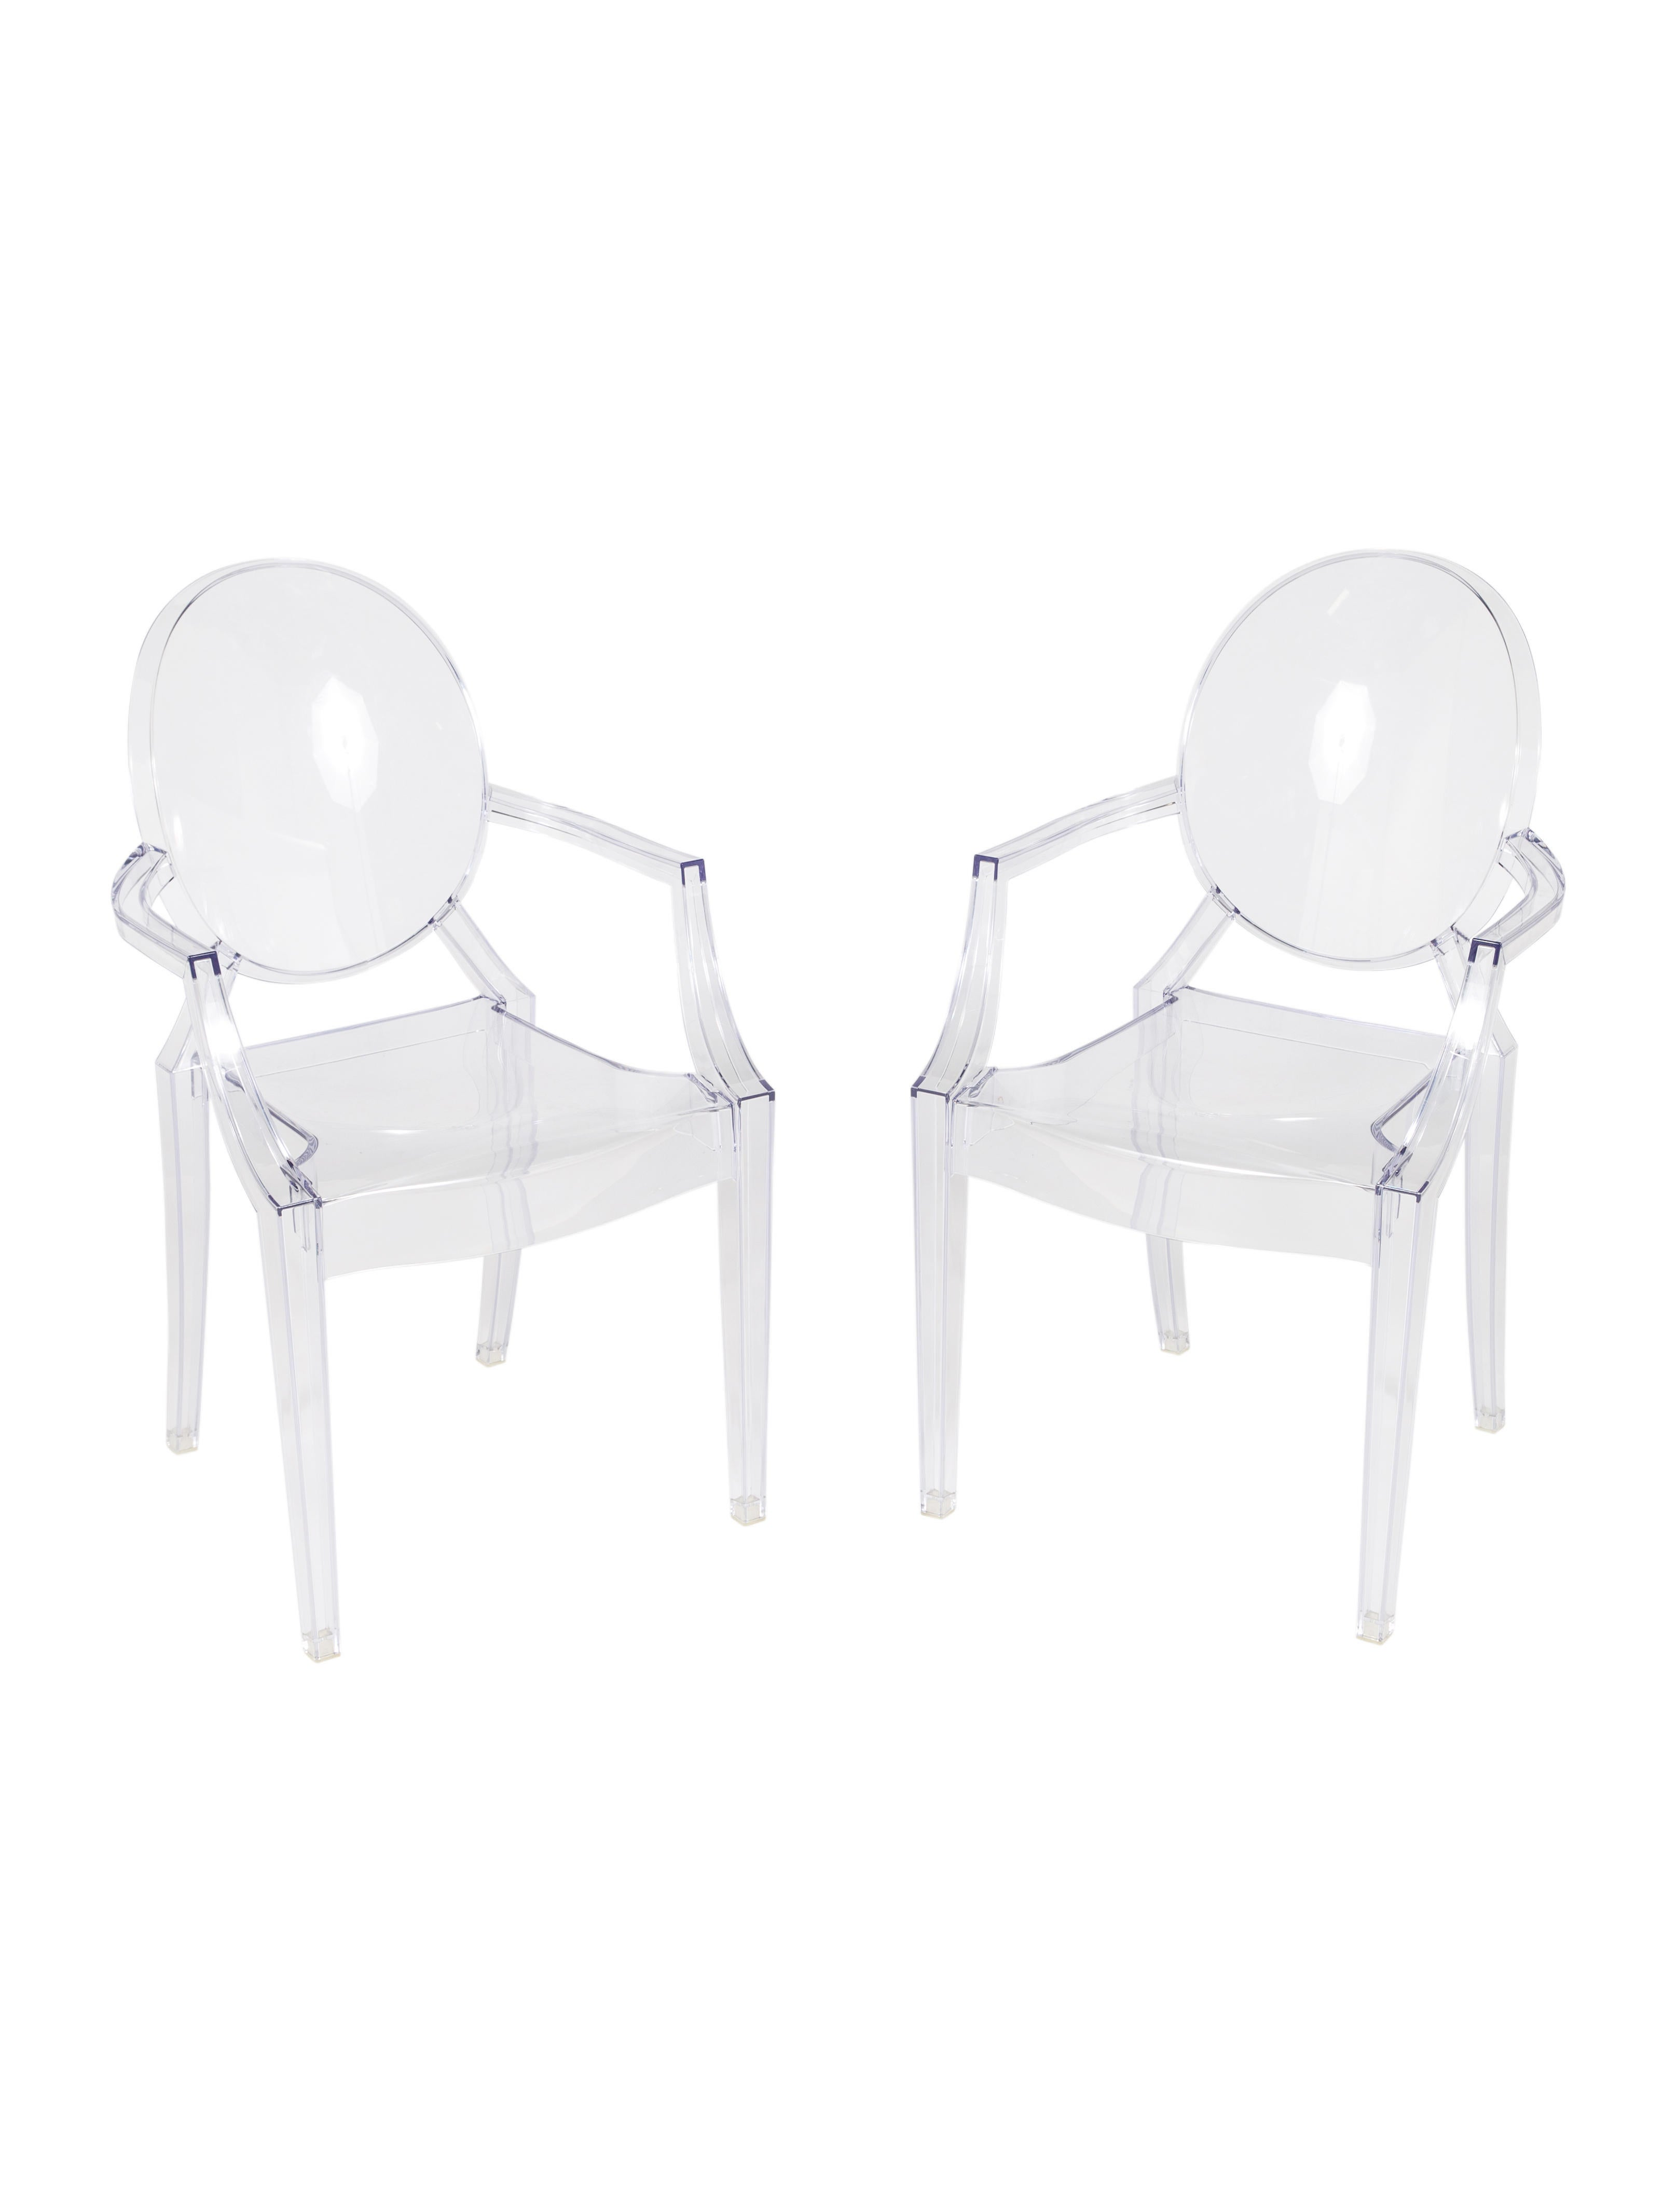 victoria stock starck catalog ghost in style philippe product chair